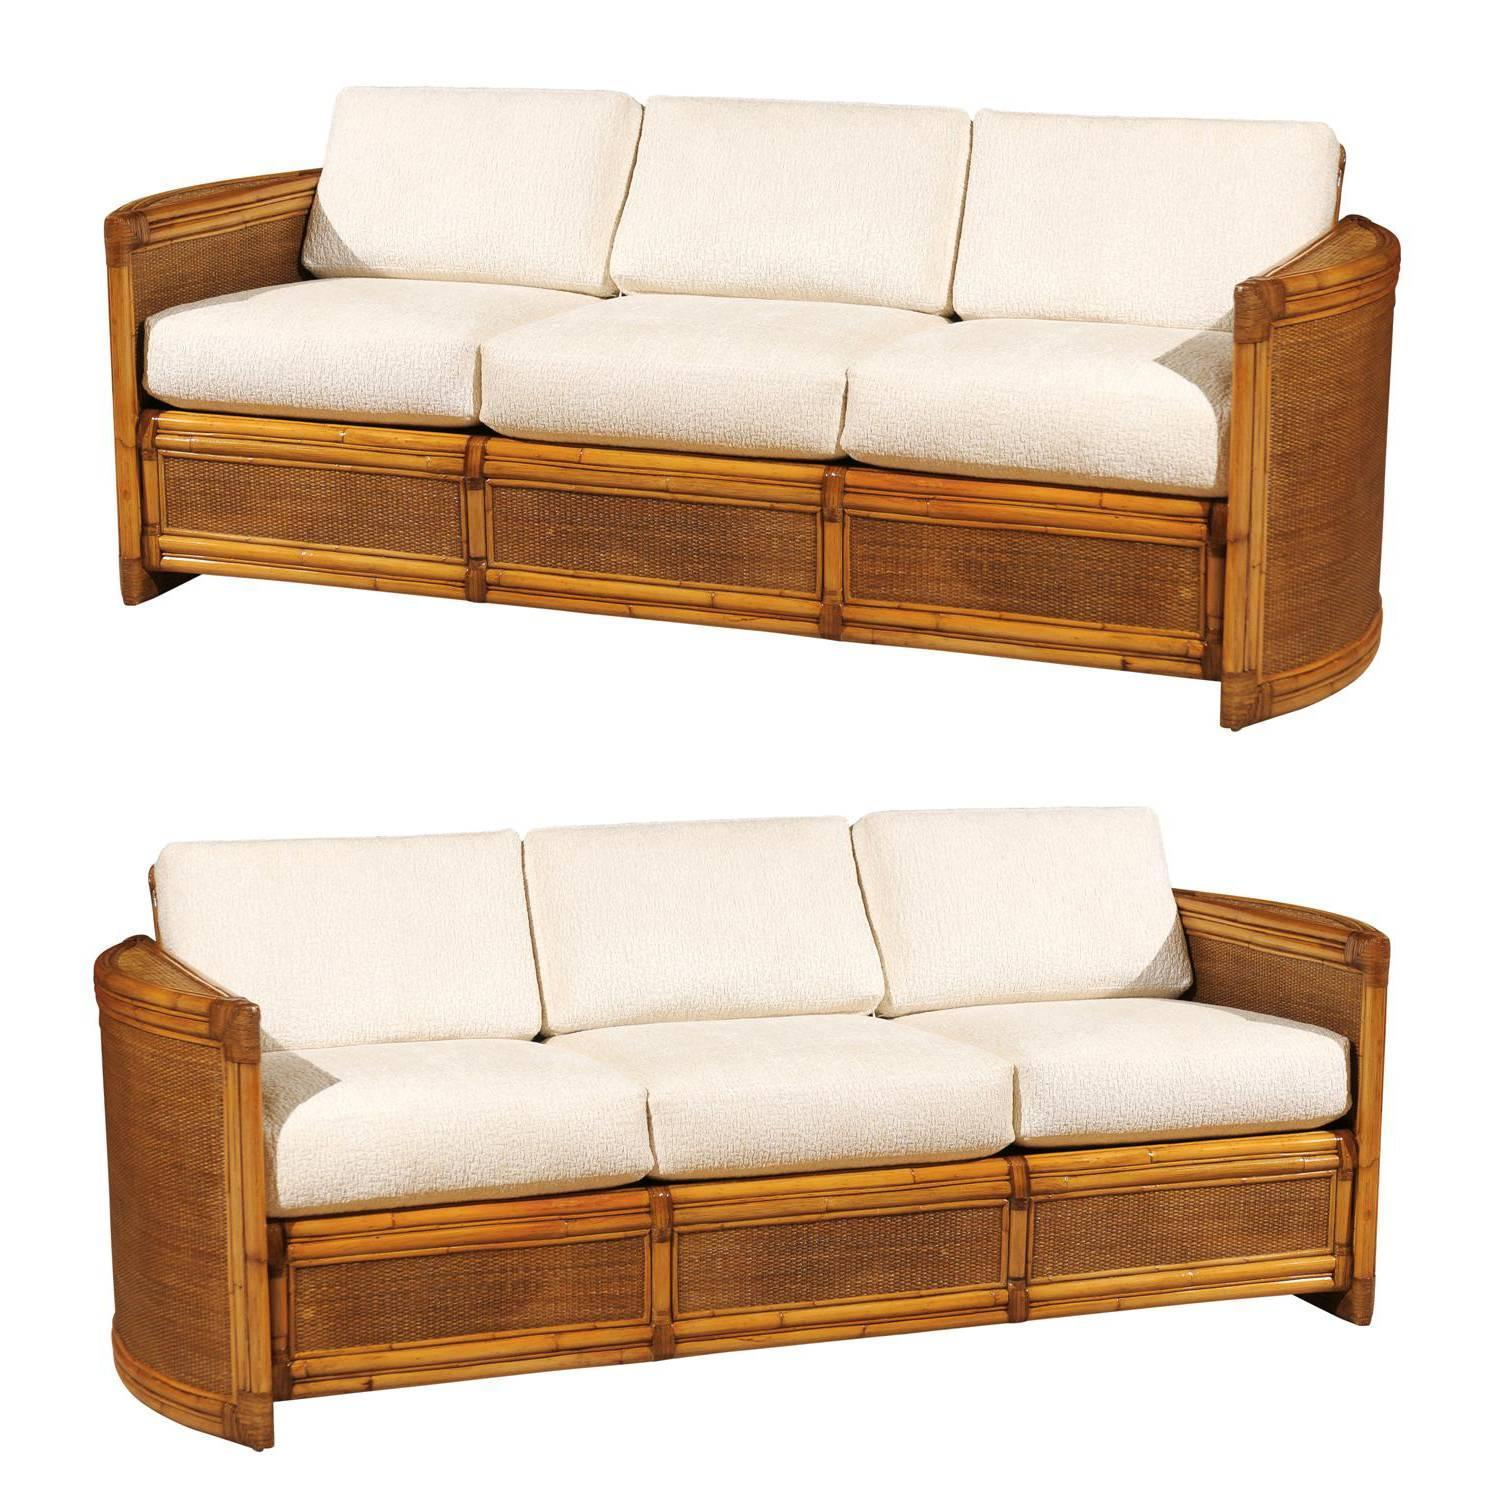 Used Cane Sofa For Sale In Bangalore: Exceptional Restored Vintage Rattan Sofa For Sale At 1stdibs